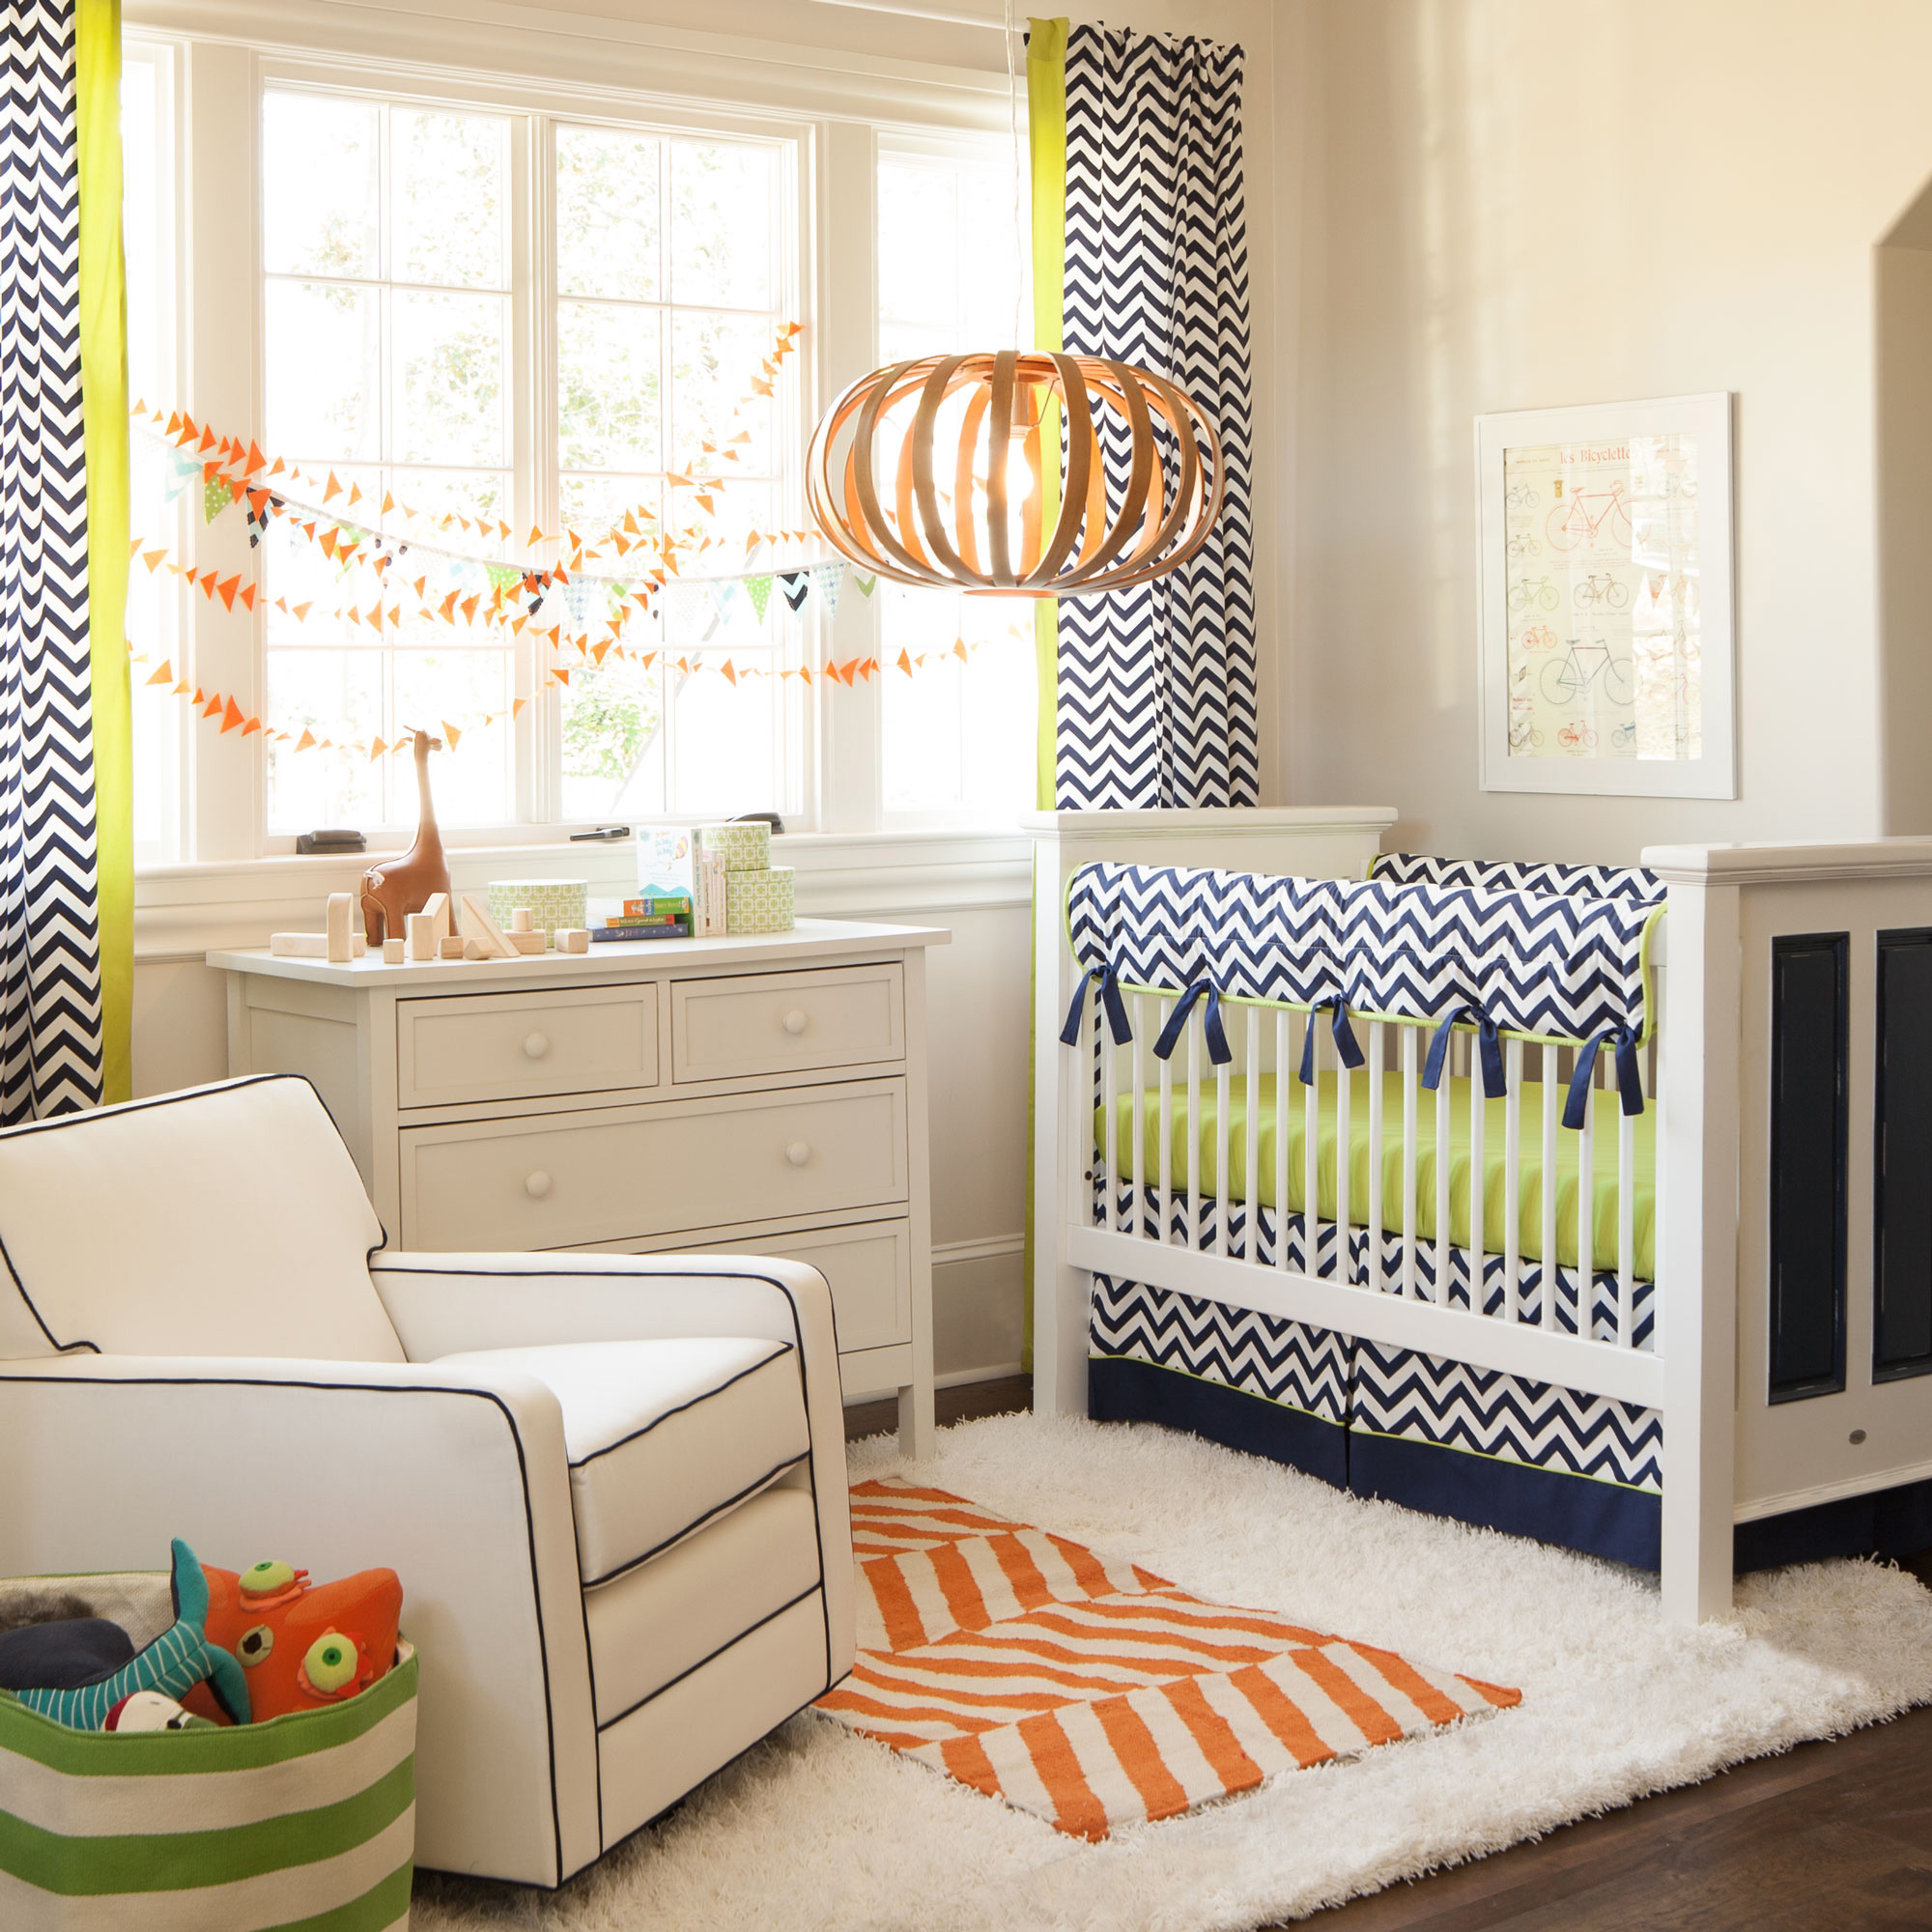 Navy and Citron Zig Zag Crib Bedding from Carousel Designs